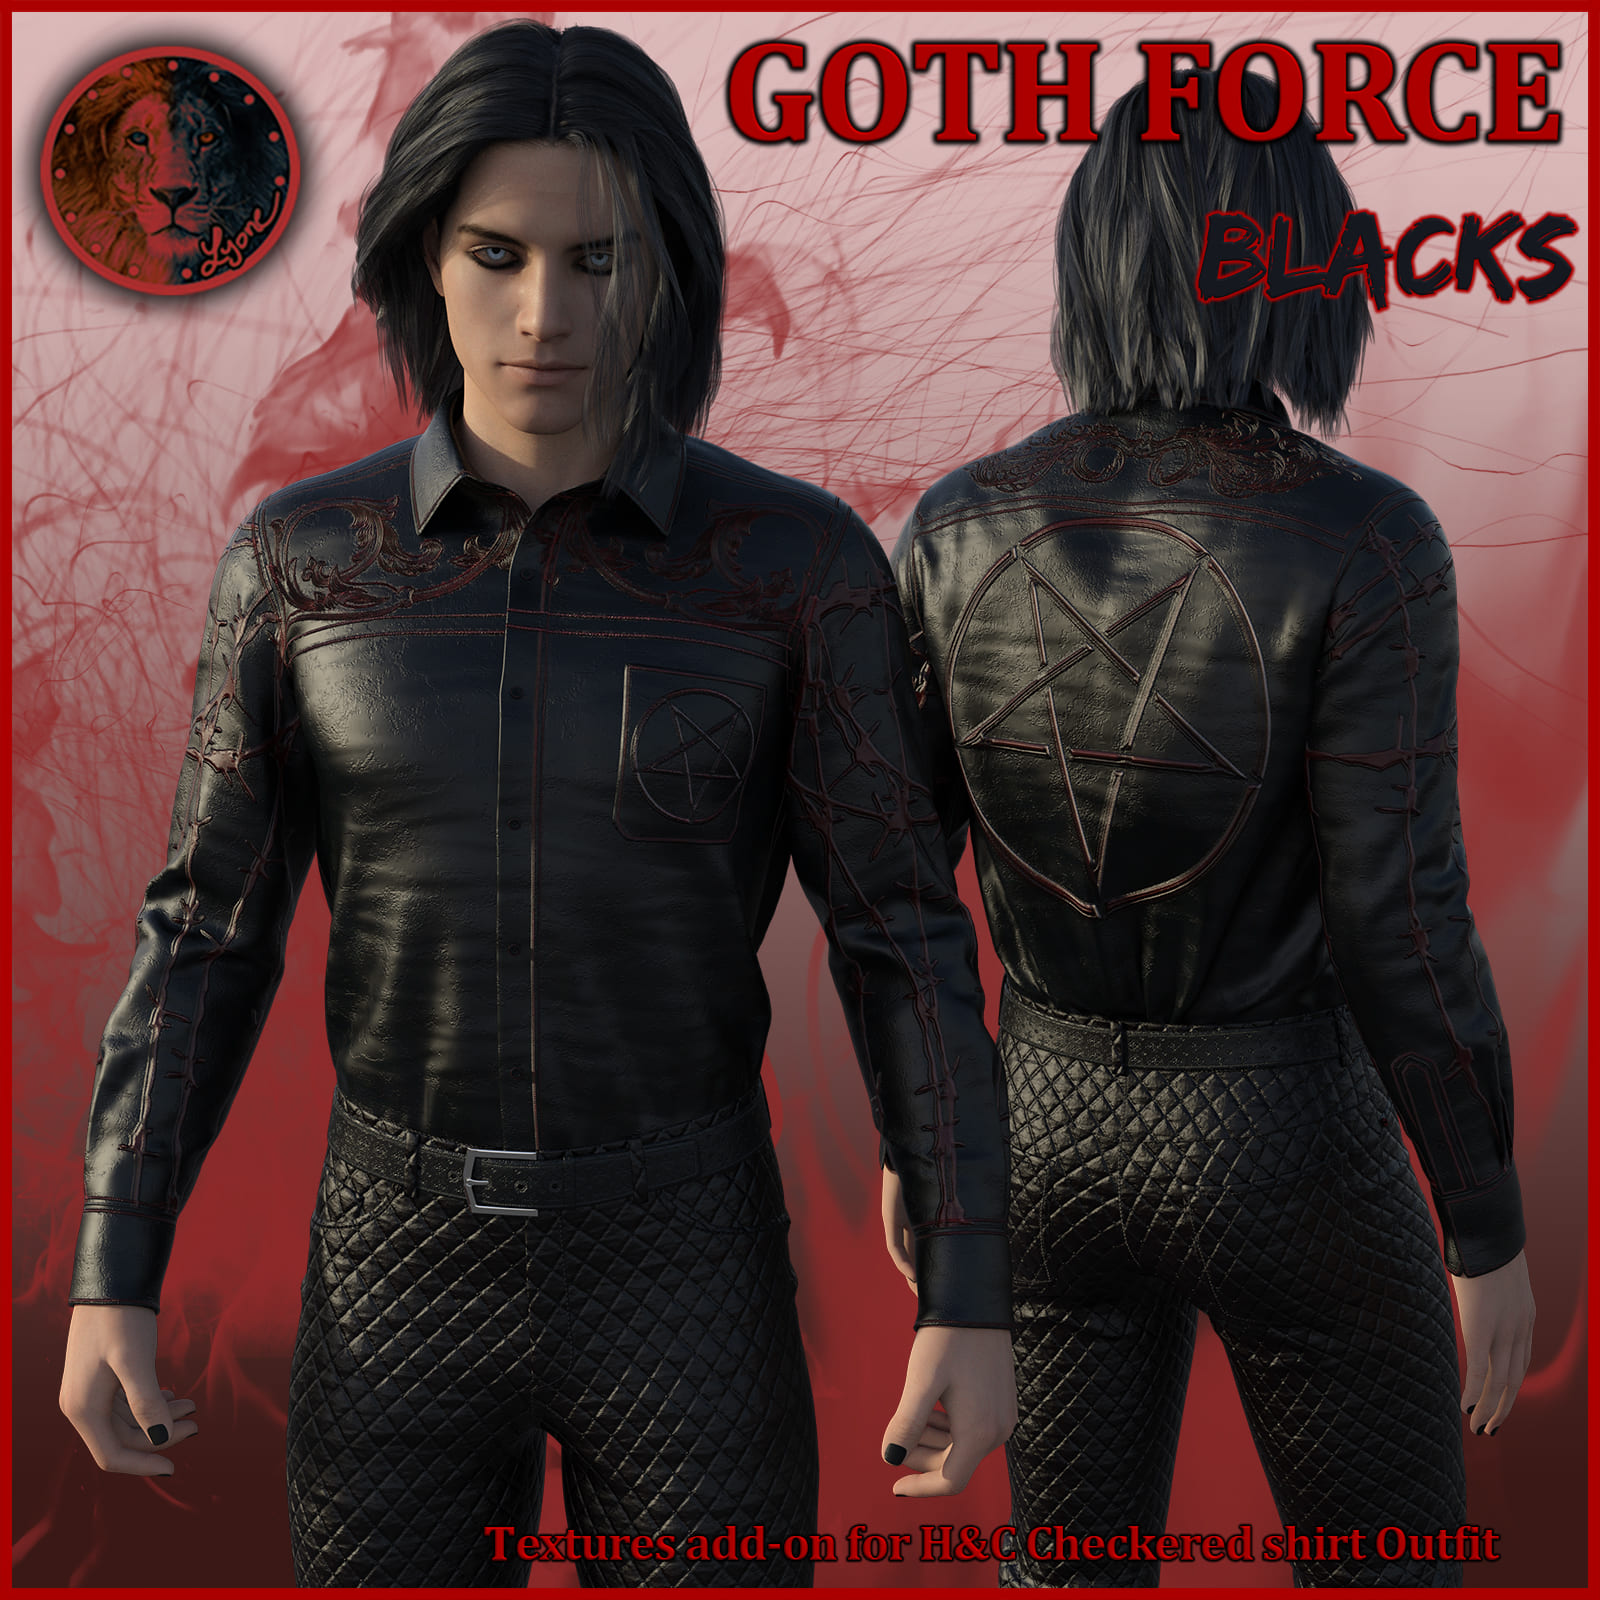 Goth Force blacks for H and C Checkered Shirt Outfit for G8M_DAZ3D下载站